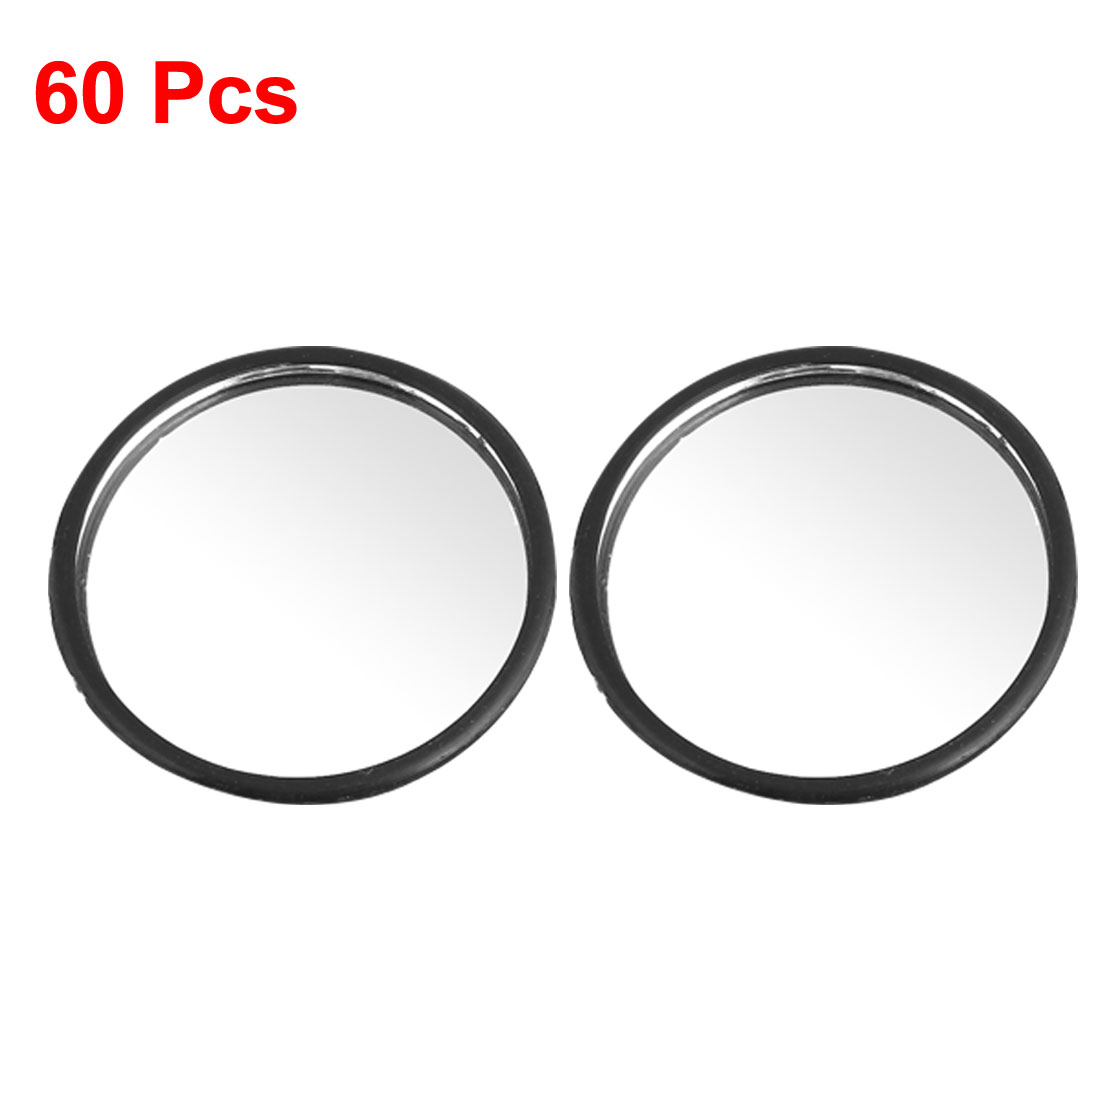 50mm 60 Pcs/lot Black Plastic Wide Angle Round Convex Car Blind Spot Mirror Diameter 5cm(China (Mainland))